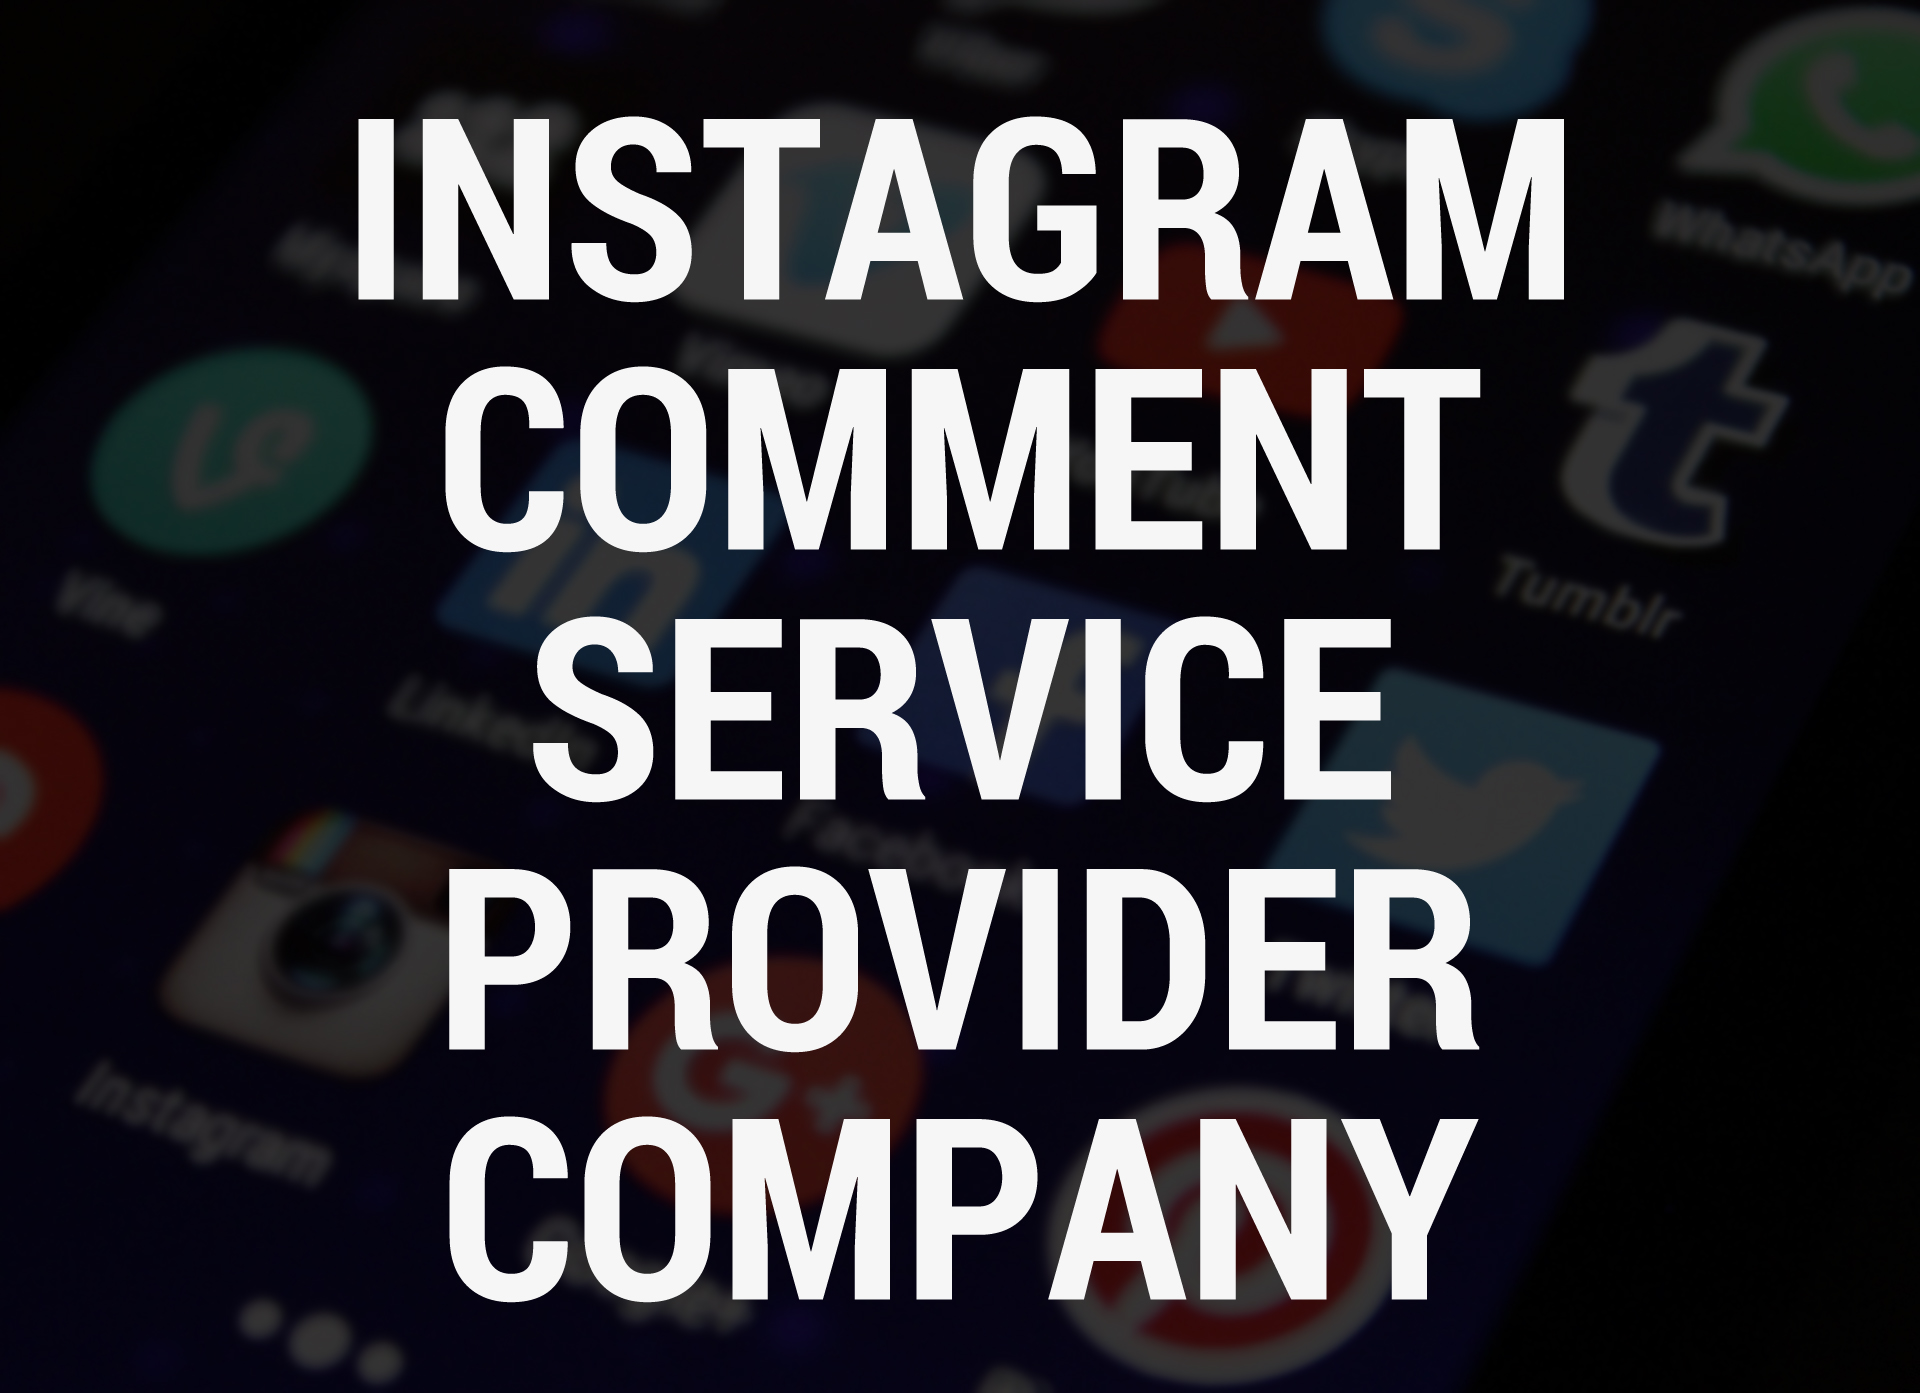 Instagram Comment Service